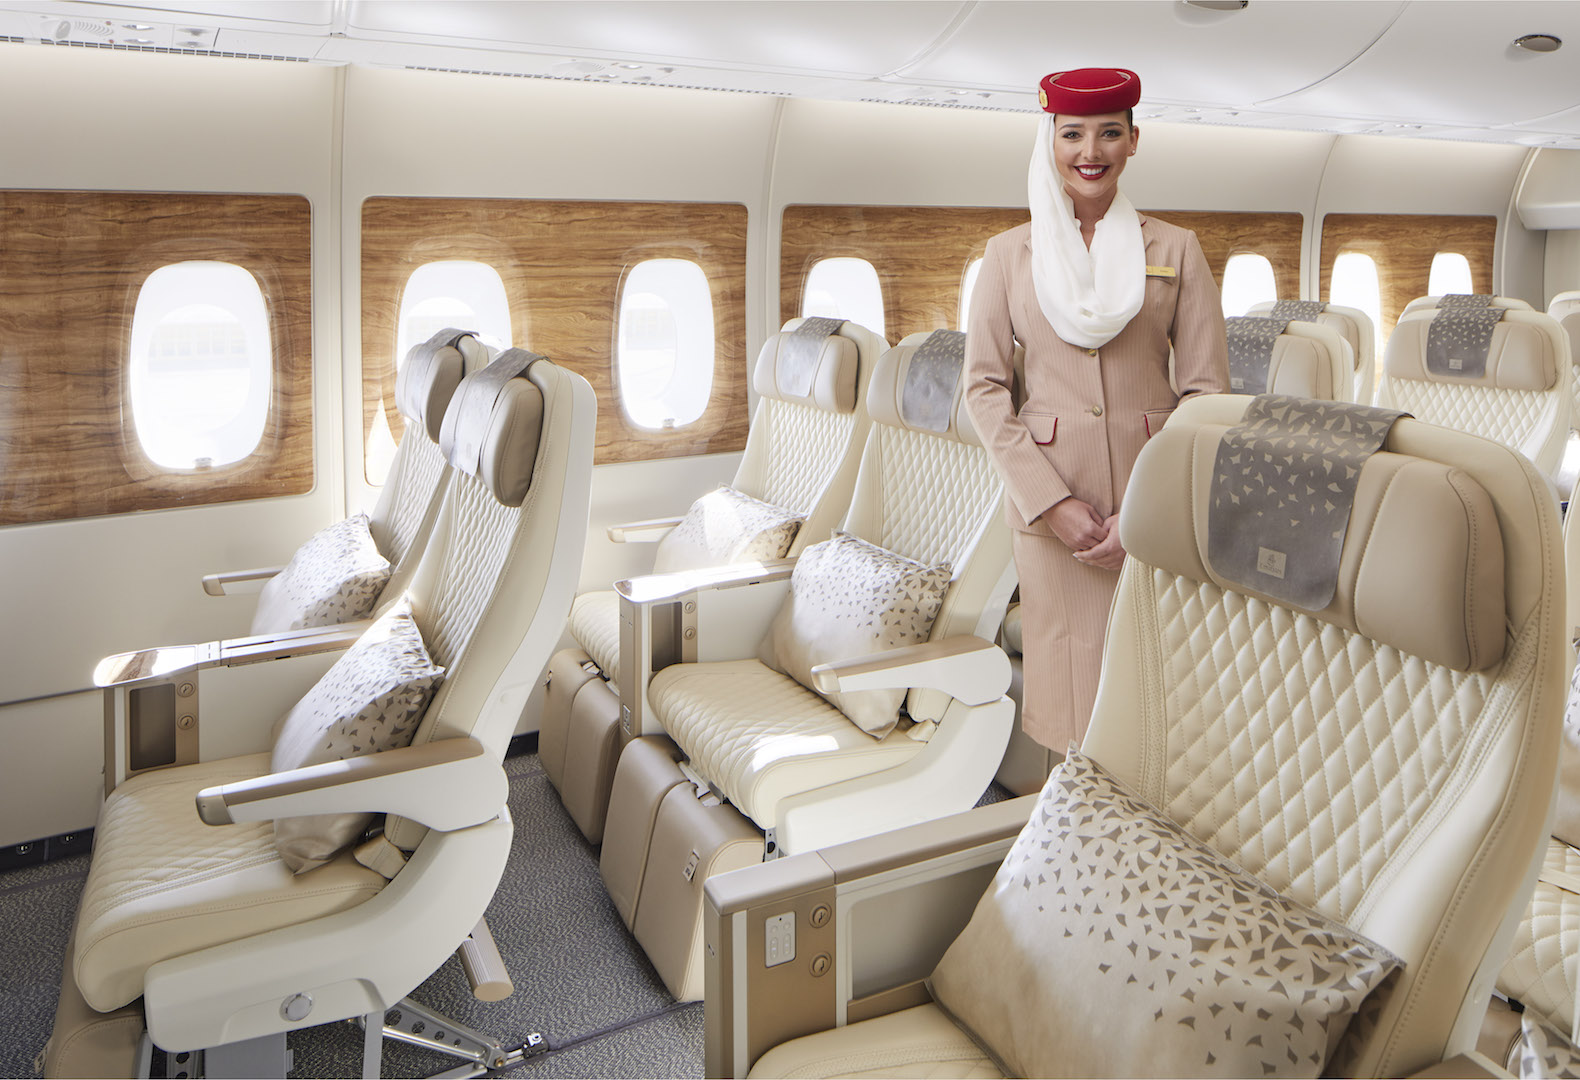 EMIRATES new Premium Economy cabin product 2020